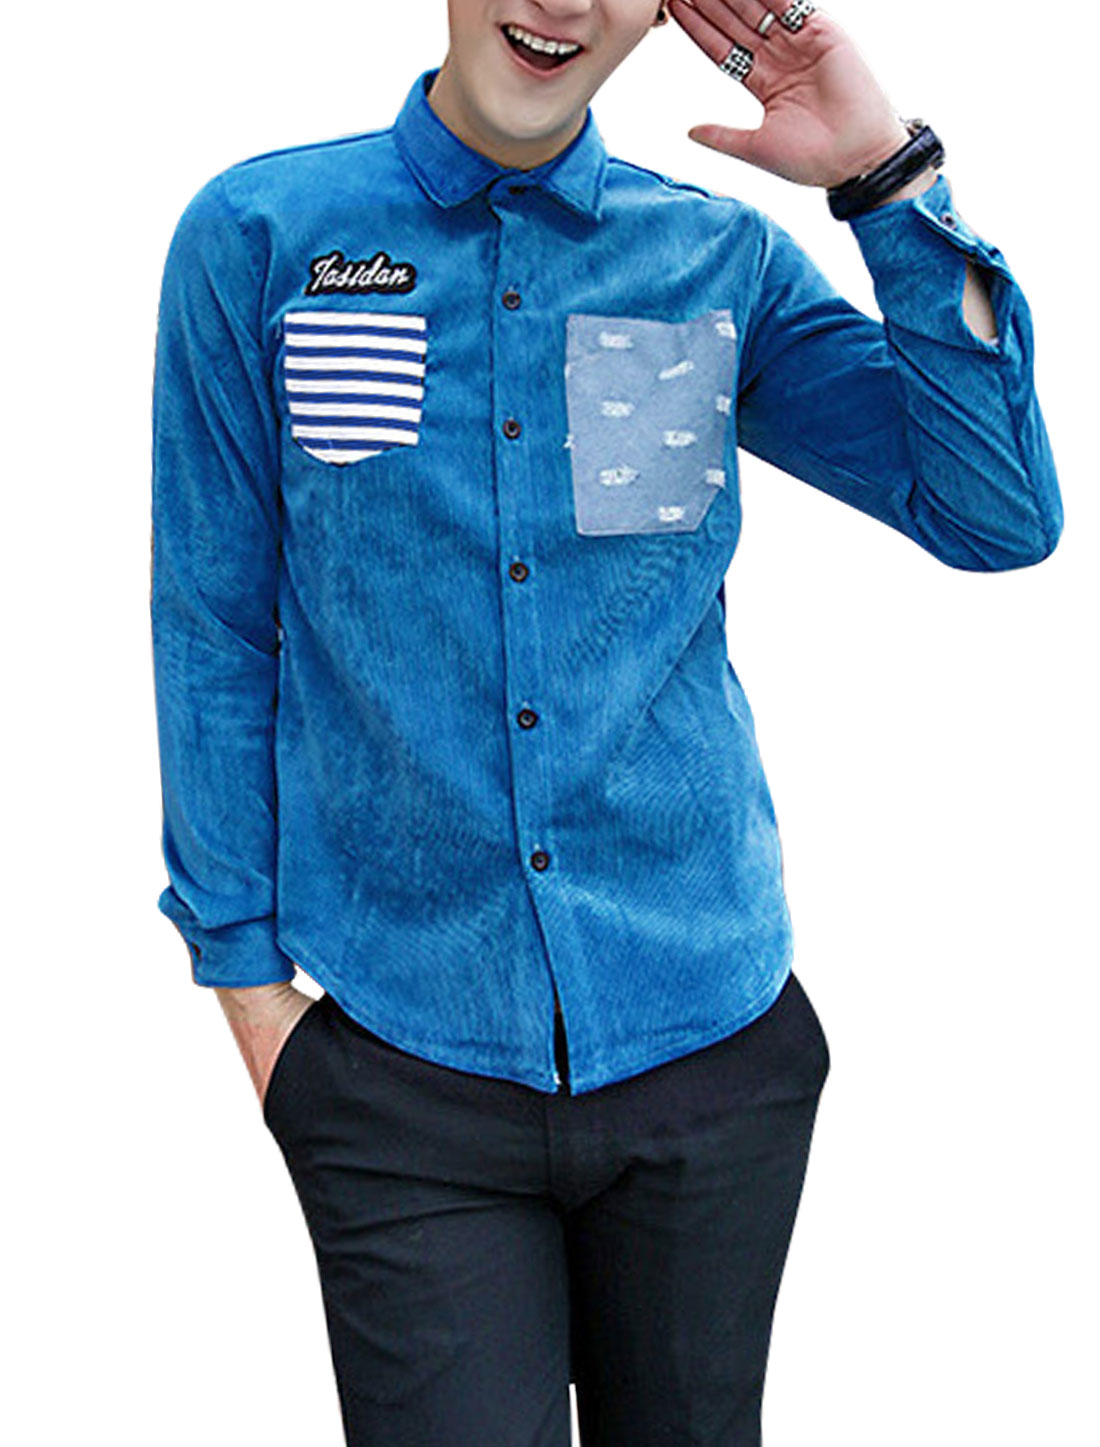 Men Button Closure Stripes Back Spliced Casual Shirt Royal Blue White M